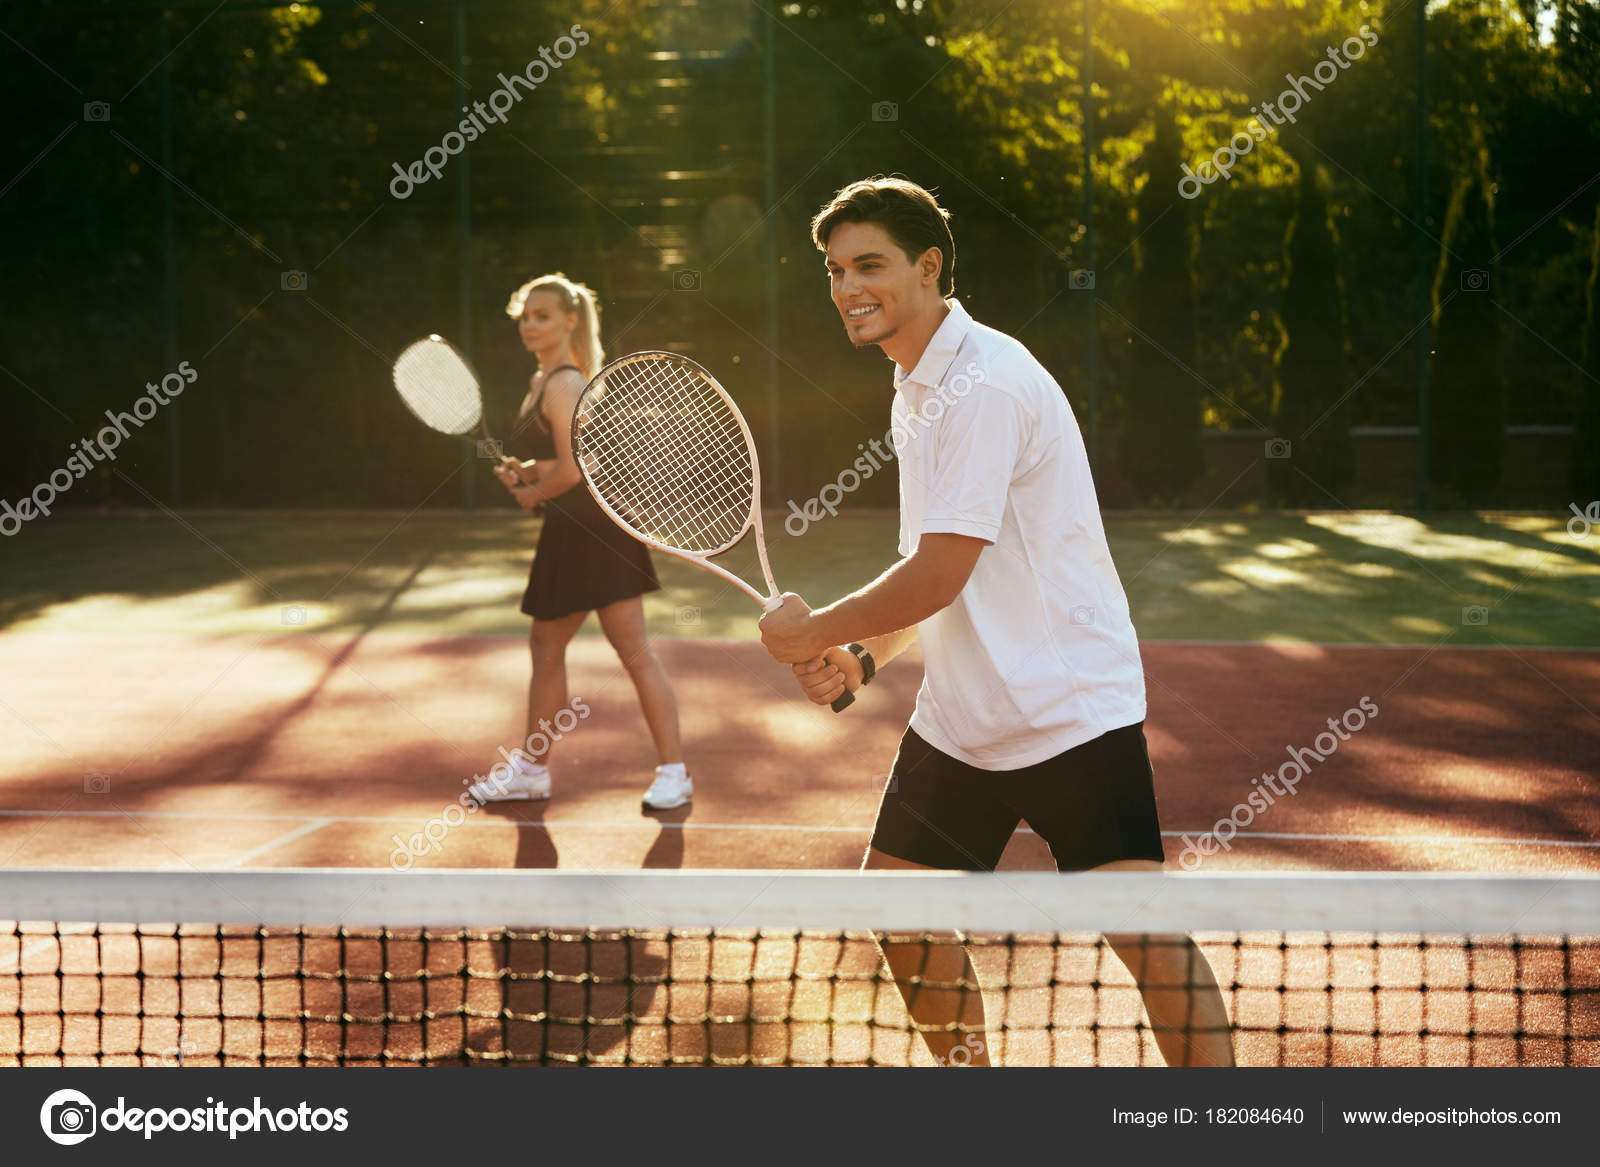 Man And Woman Playing Tennis On Court Stock Photo C Puhhha 182084640